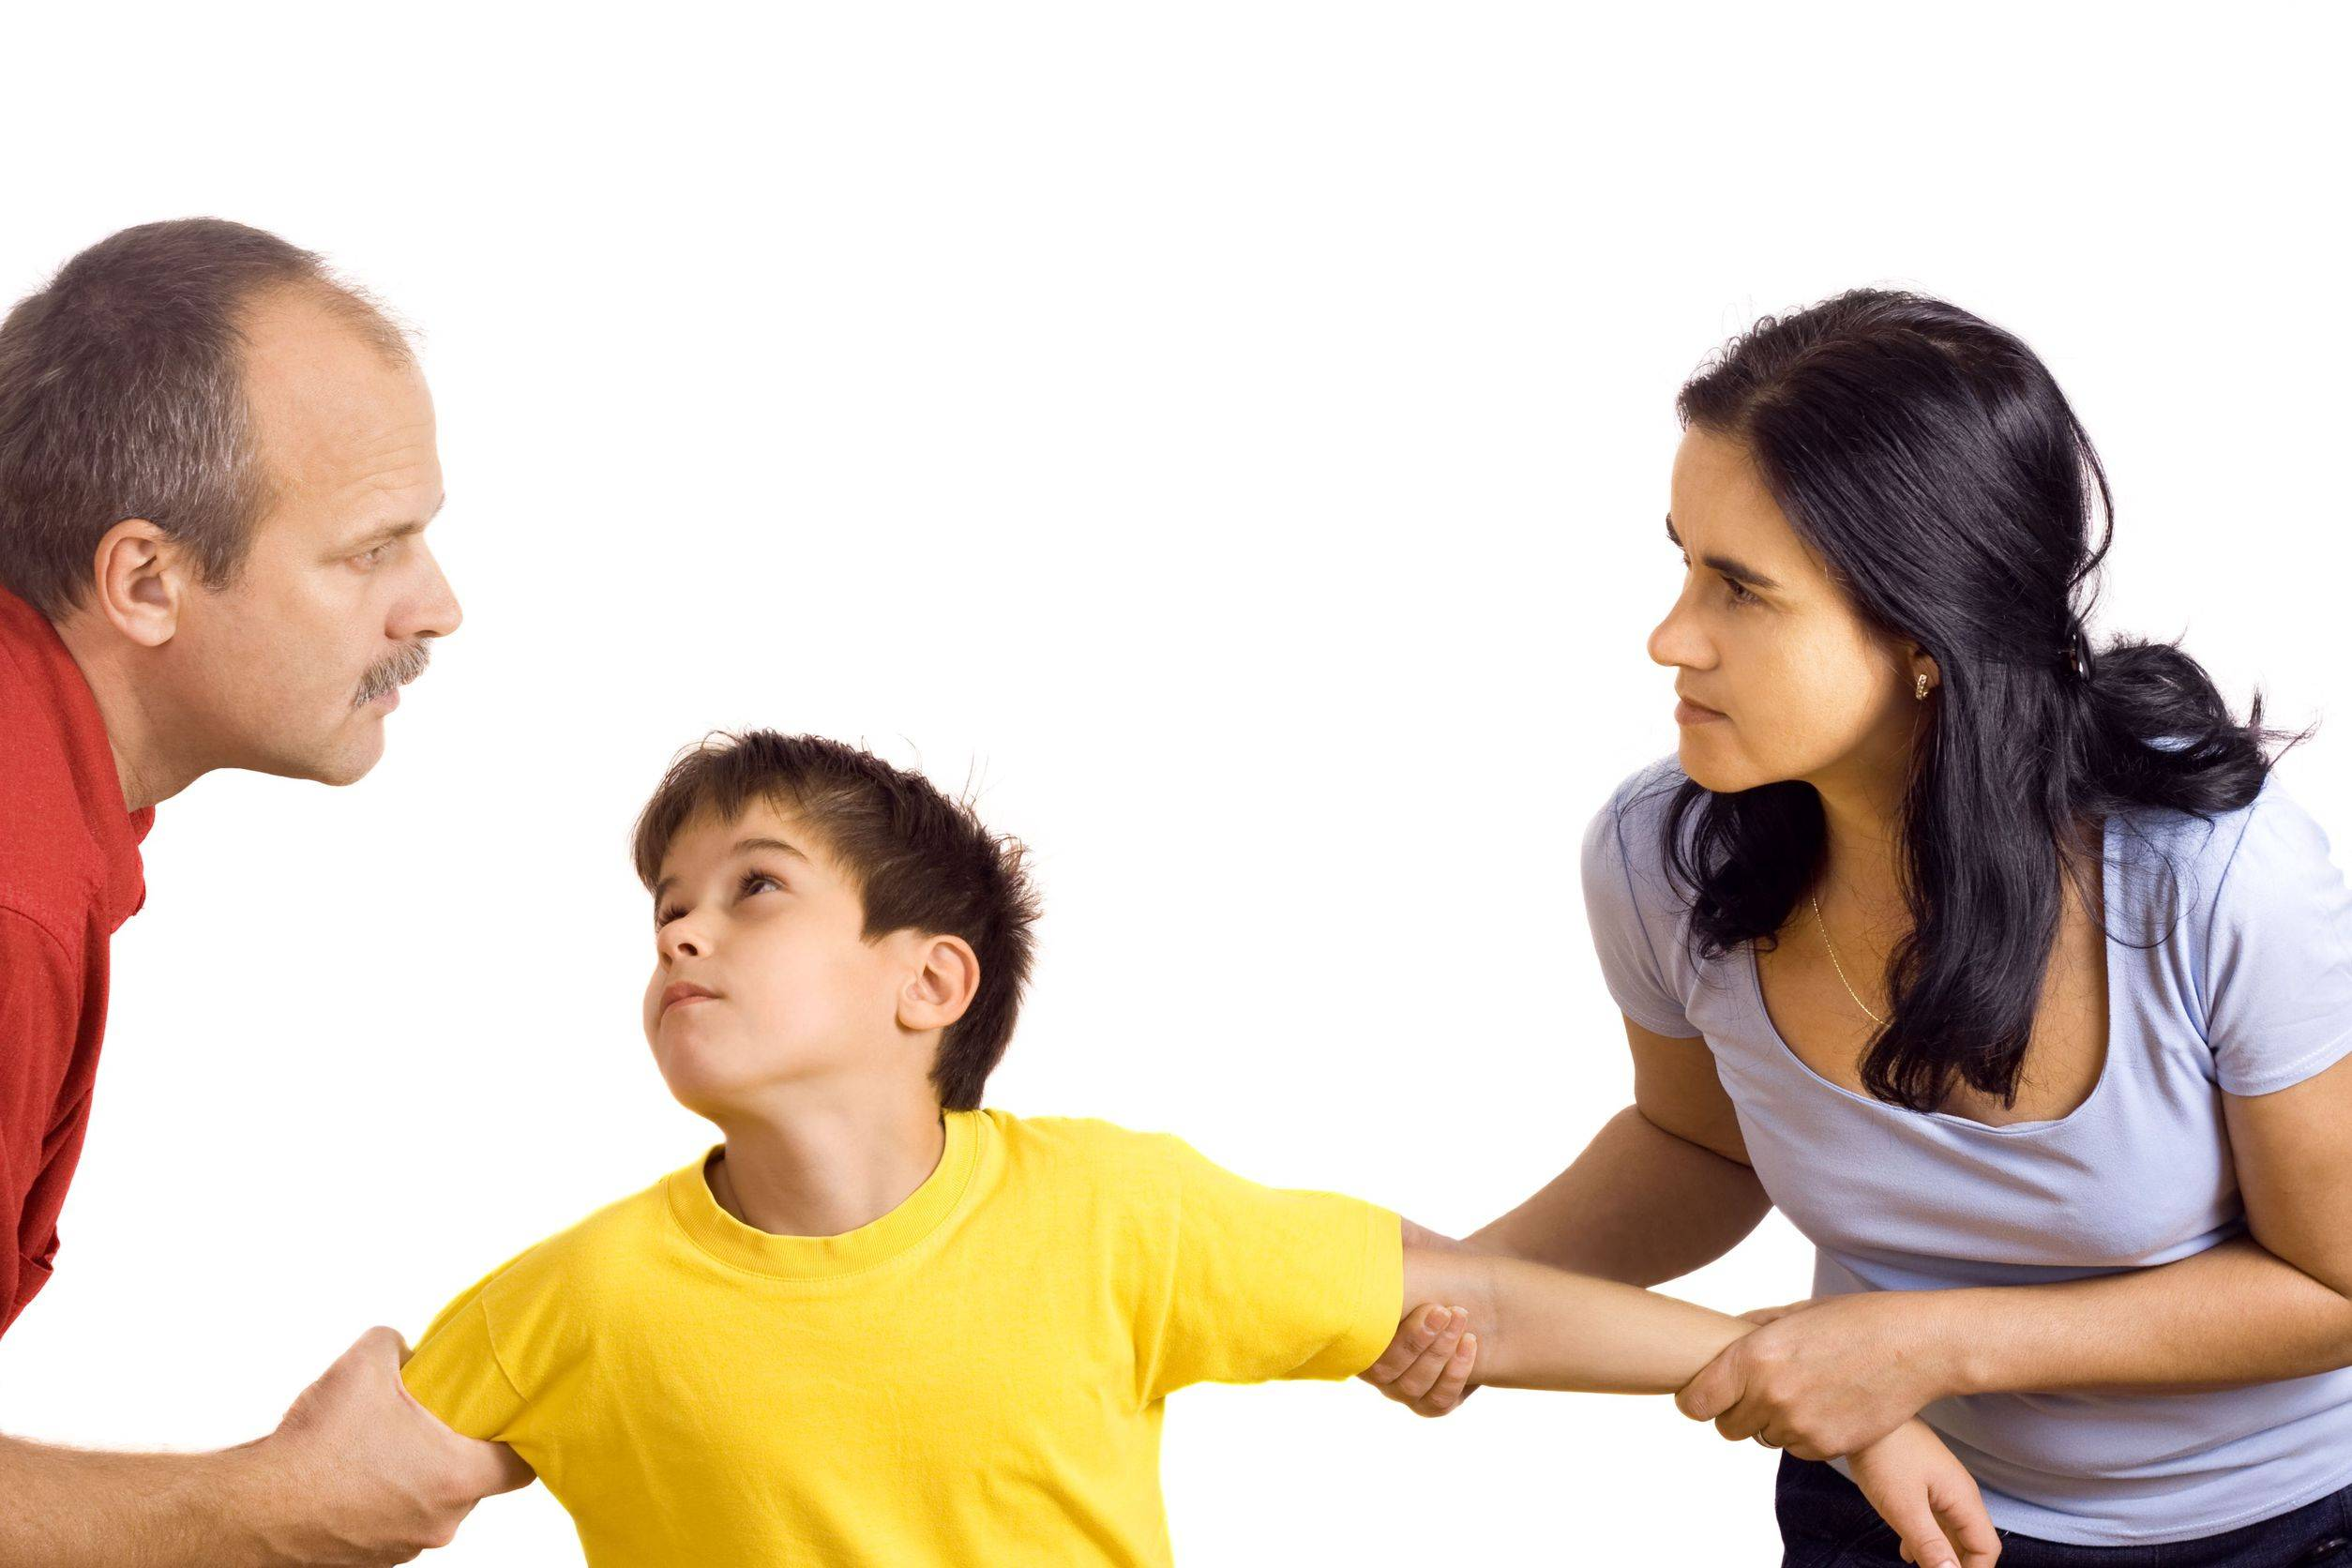 Poughkeepsie Child Custody Lawyers Child custody